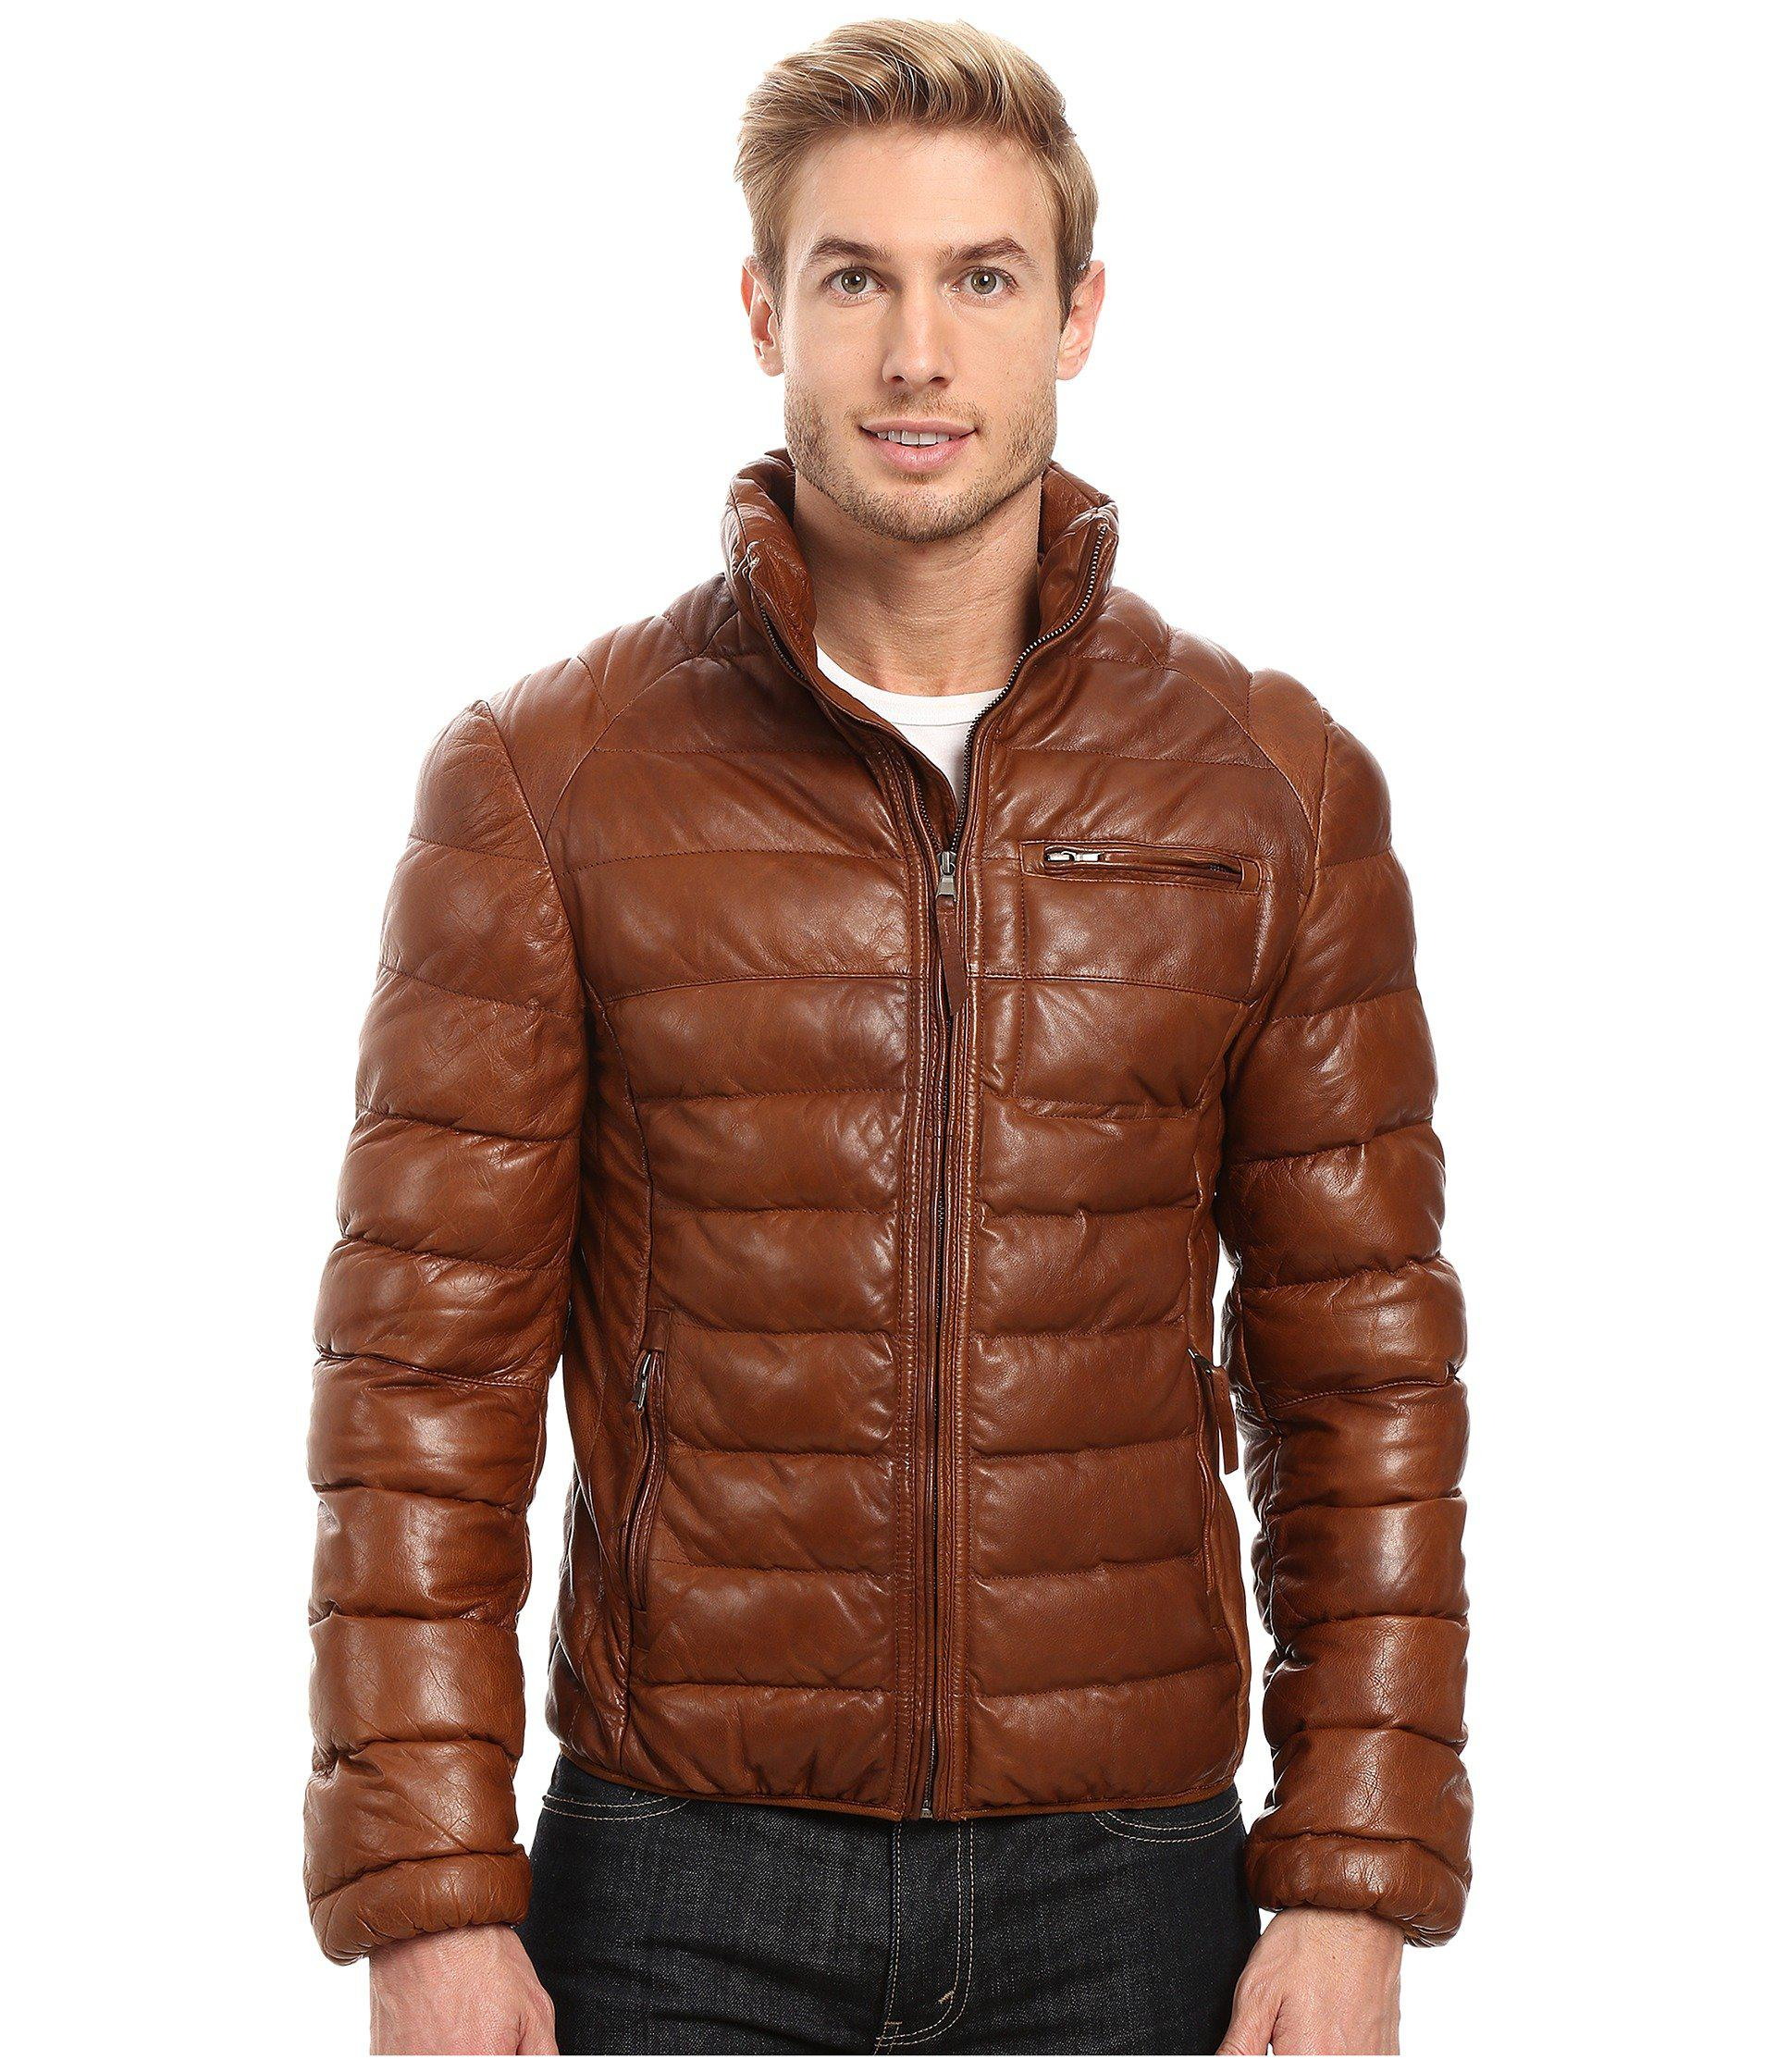 Lyst - Scully David Very Soft Leather Jacket for Men